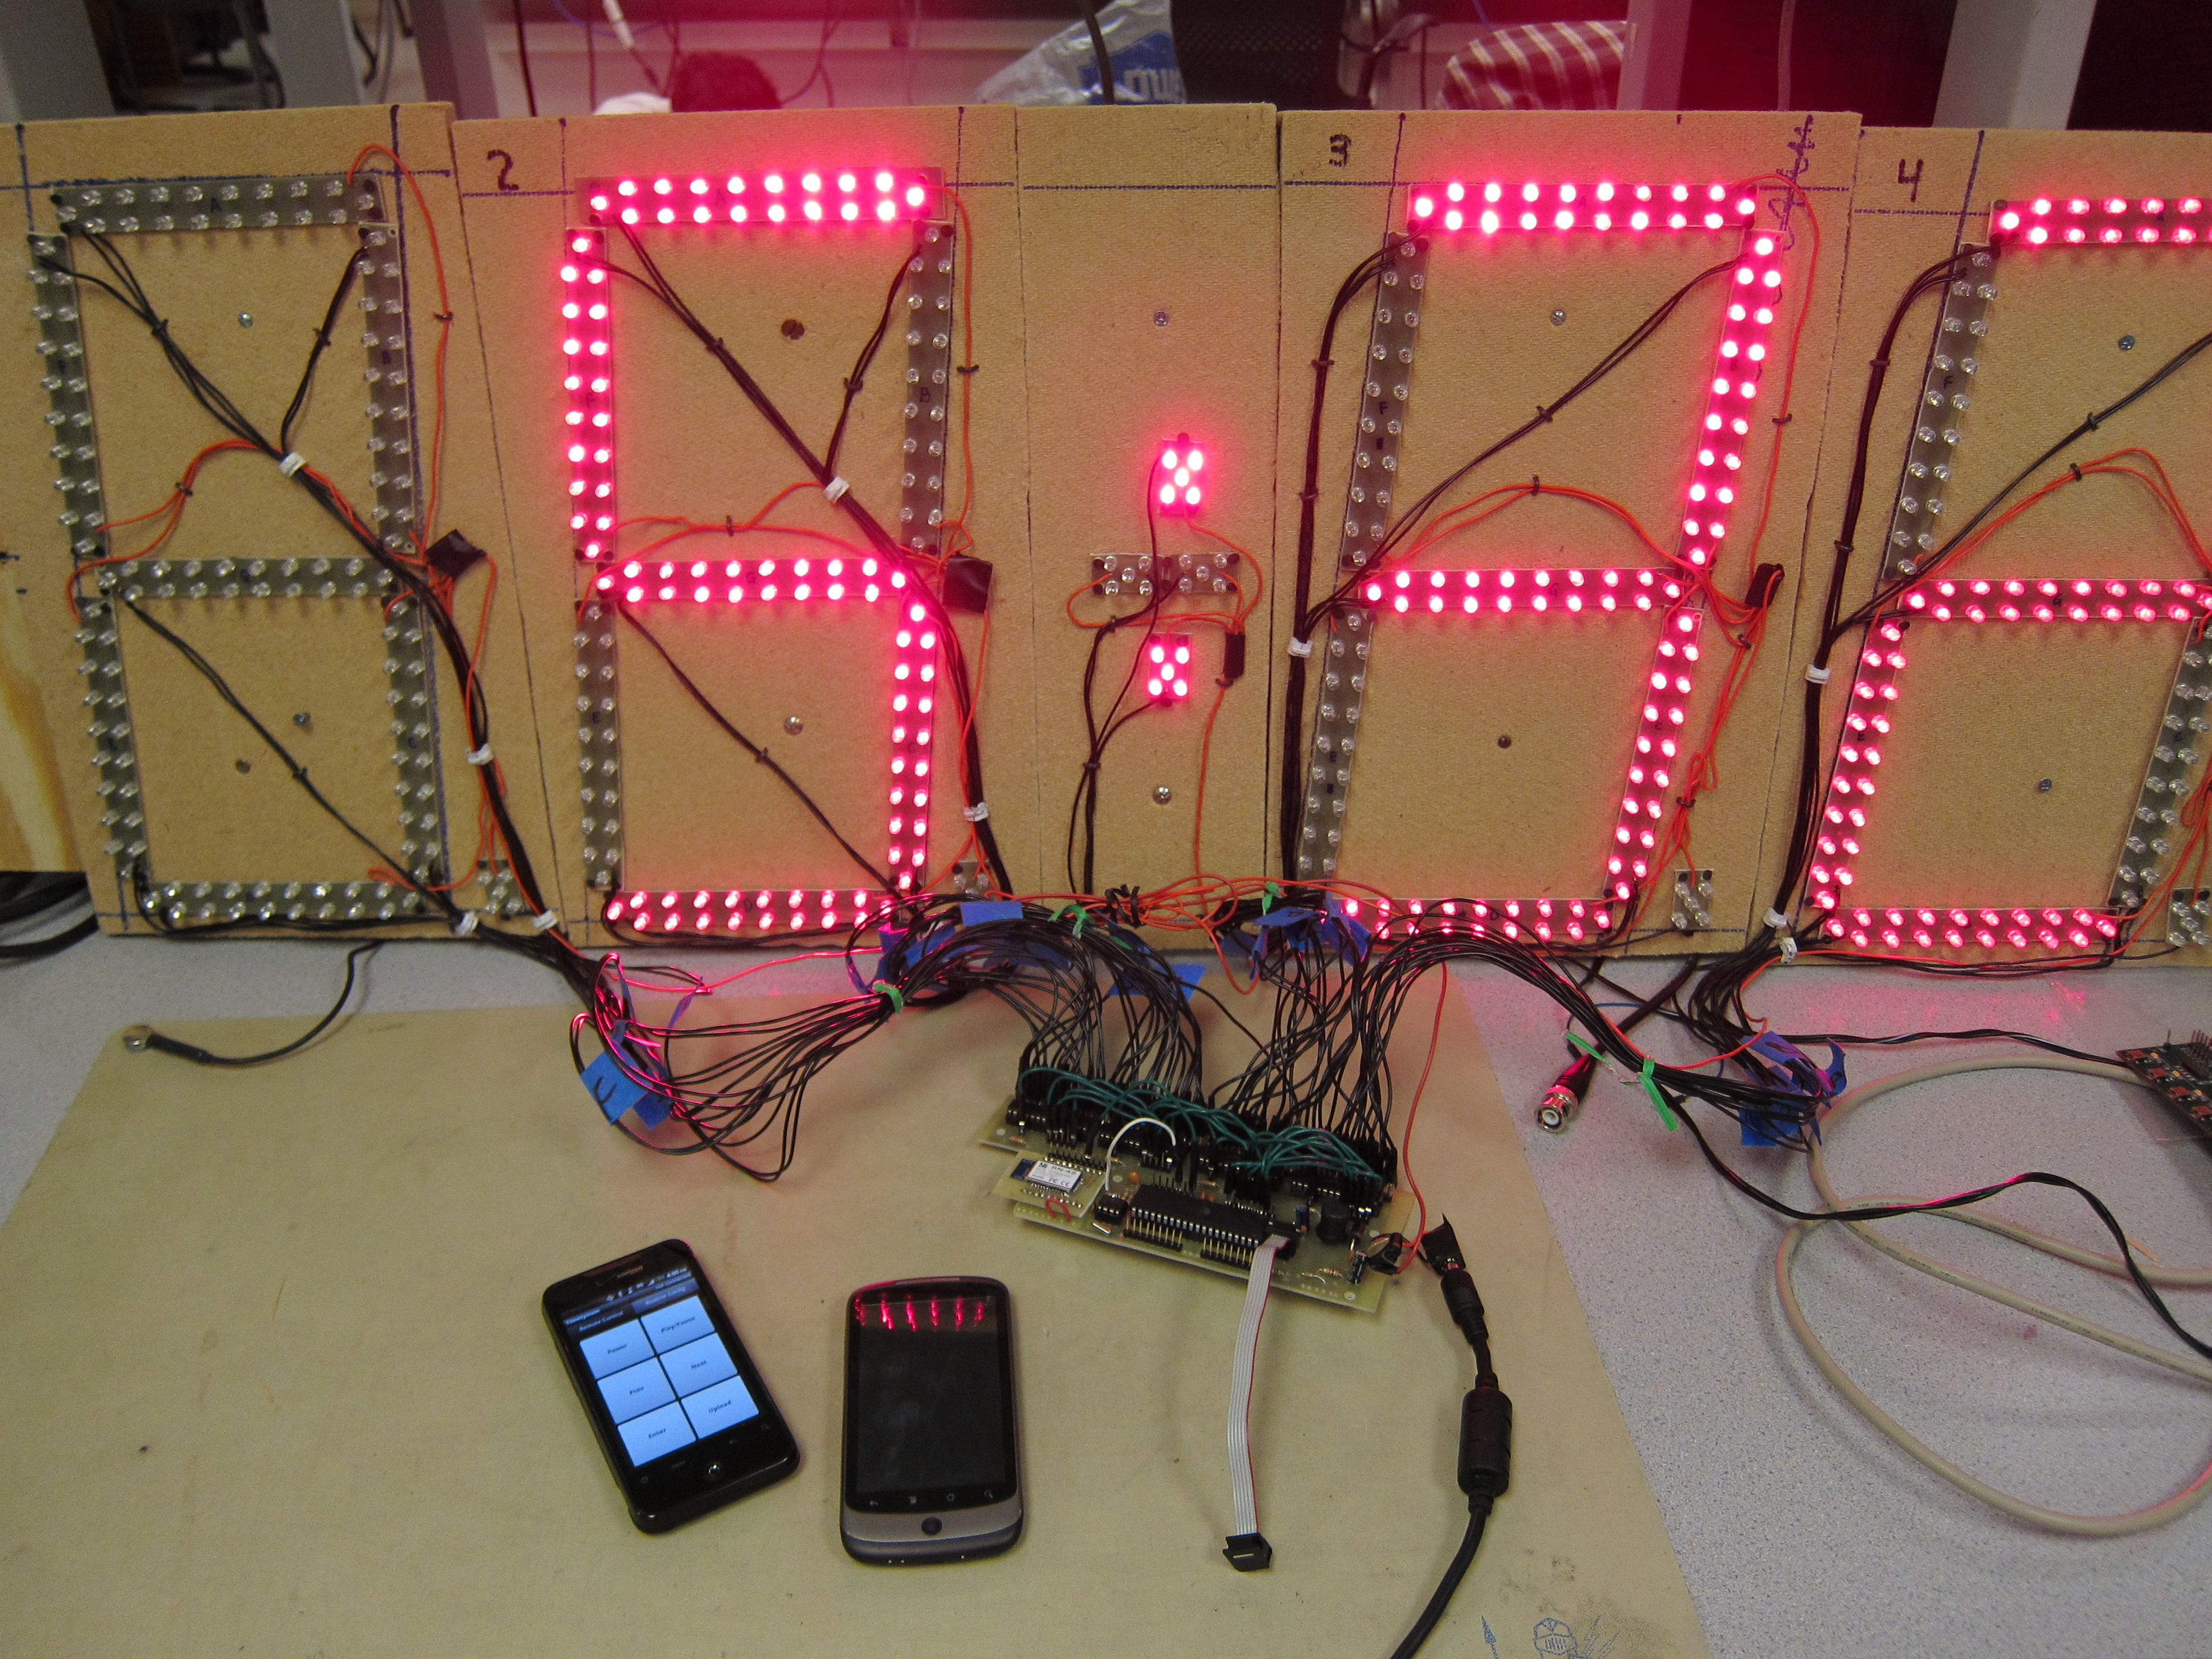 Ece 4760 Time System To Make A Long Duration Timer Circuit Electronic Projects Wireless Programmable Pace Clock